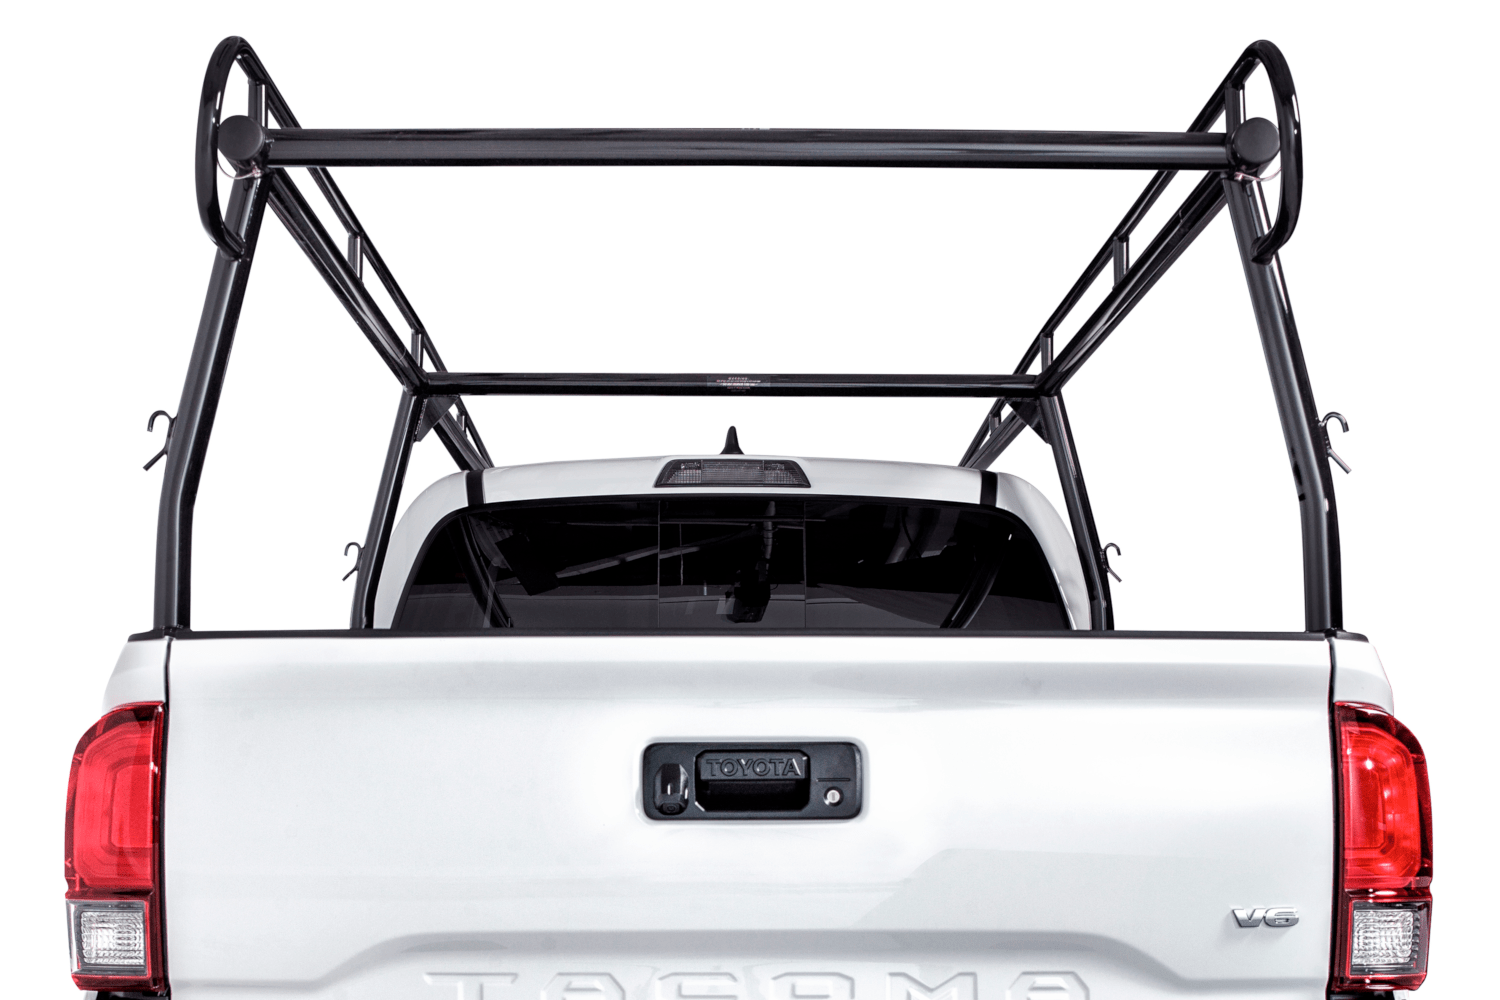 Rear shot of the truck rack.